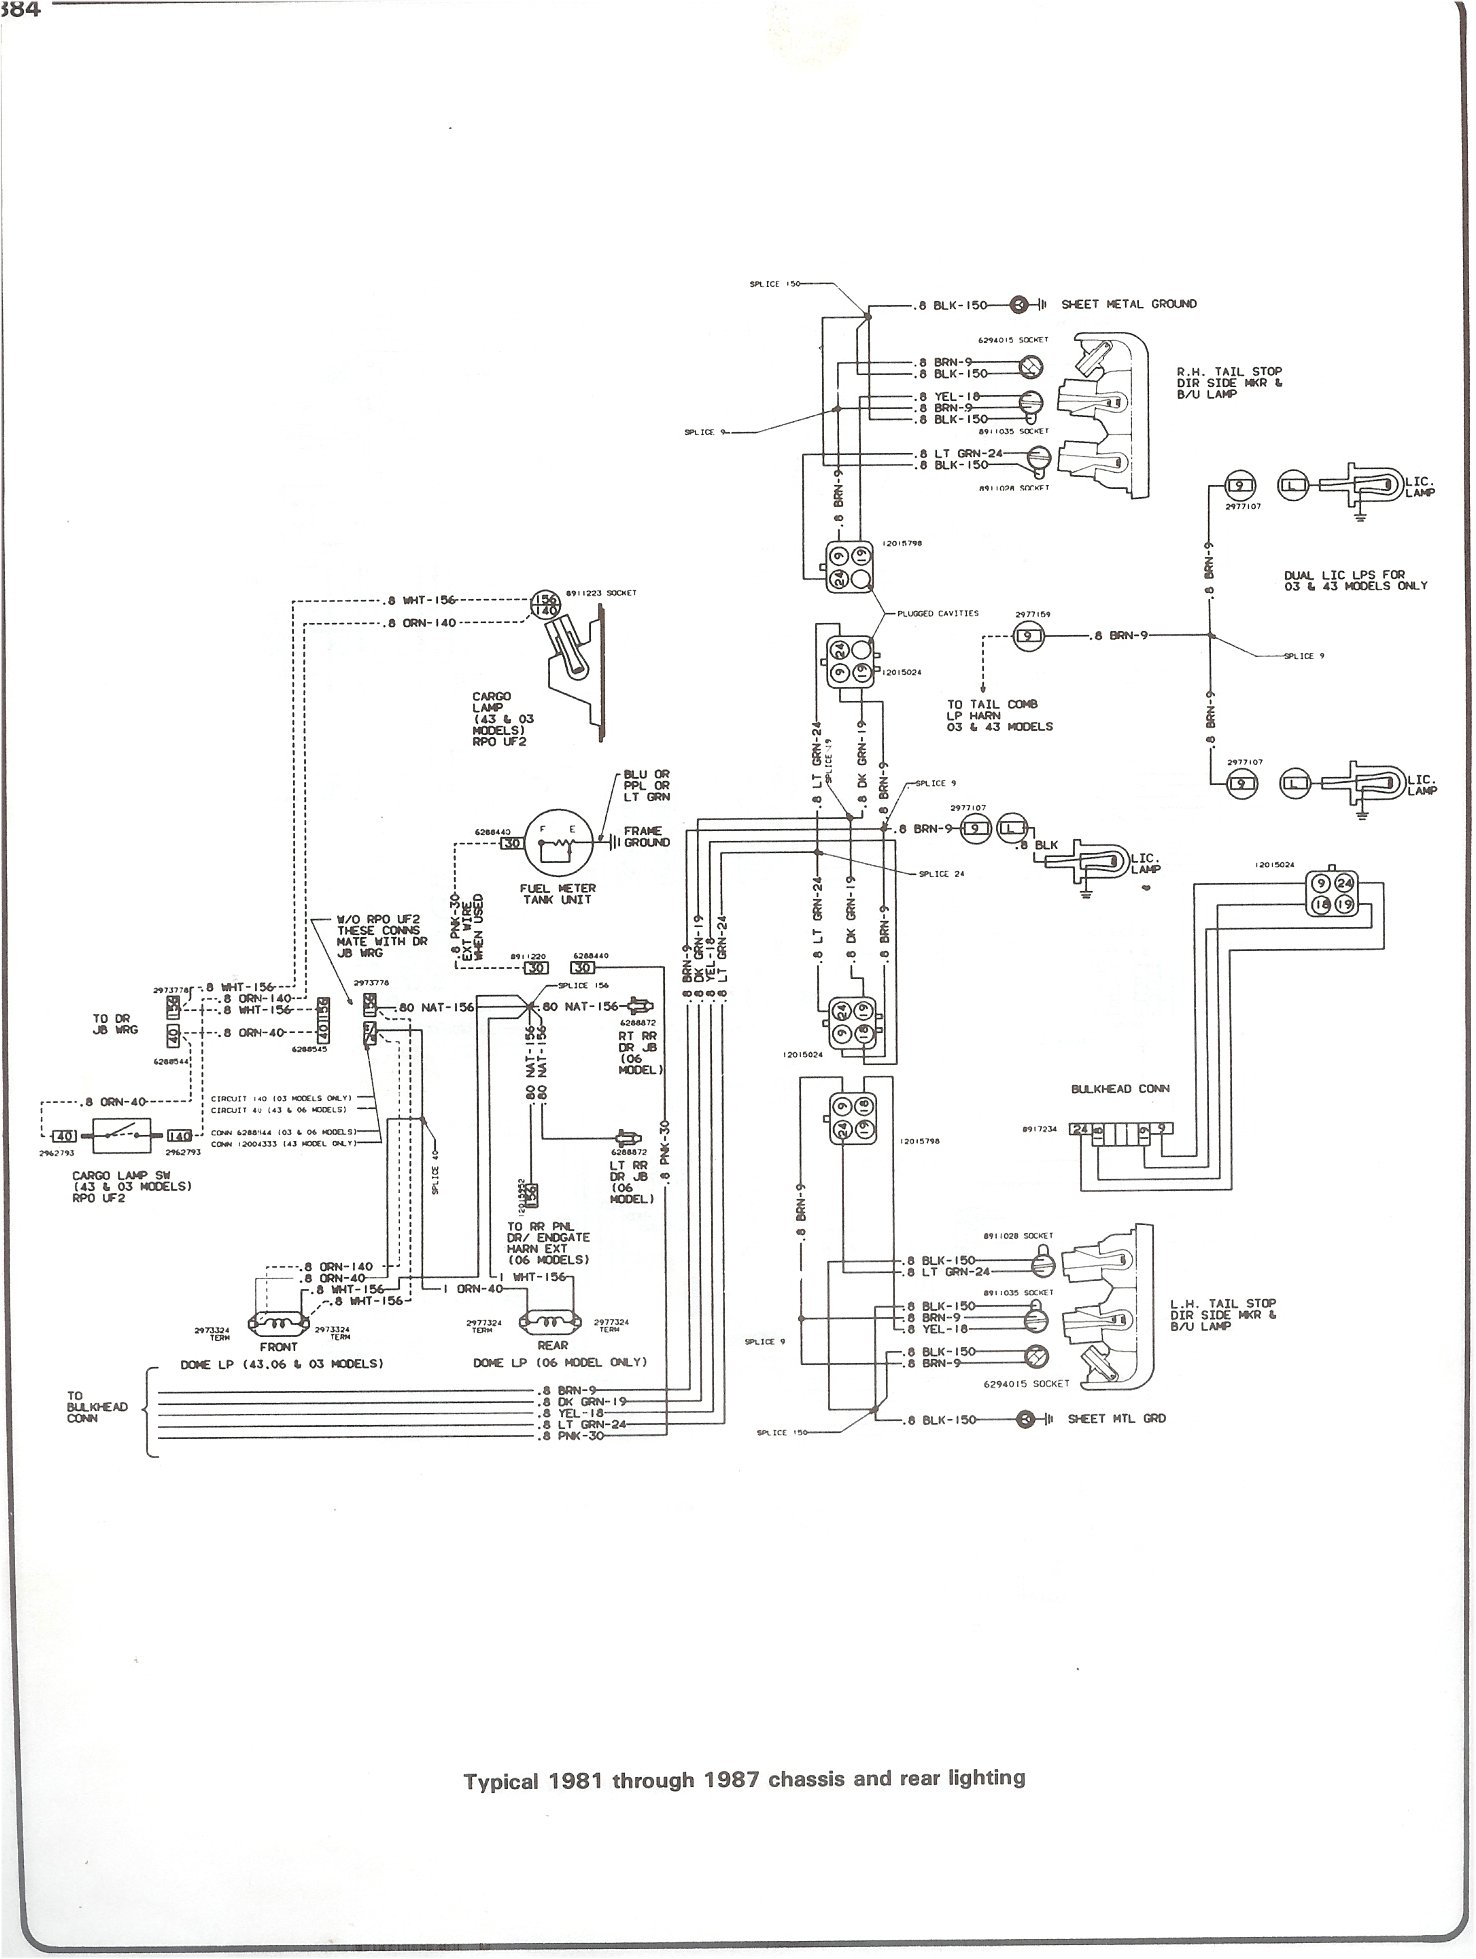 Complete 73 87 Wiring Diagrams 1985 Mustang Turn Signal Diagram 81 Chassis And Rear Lighting